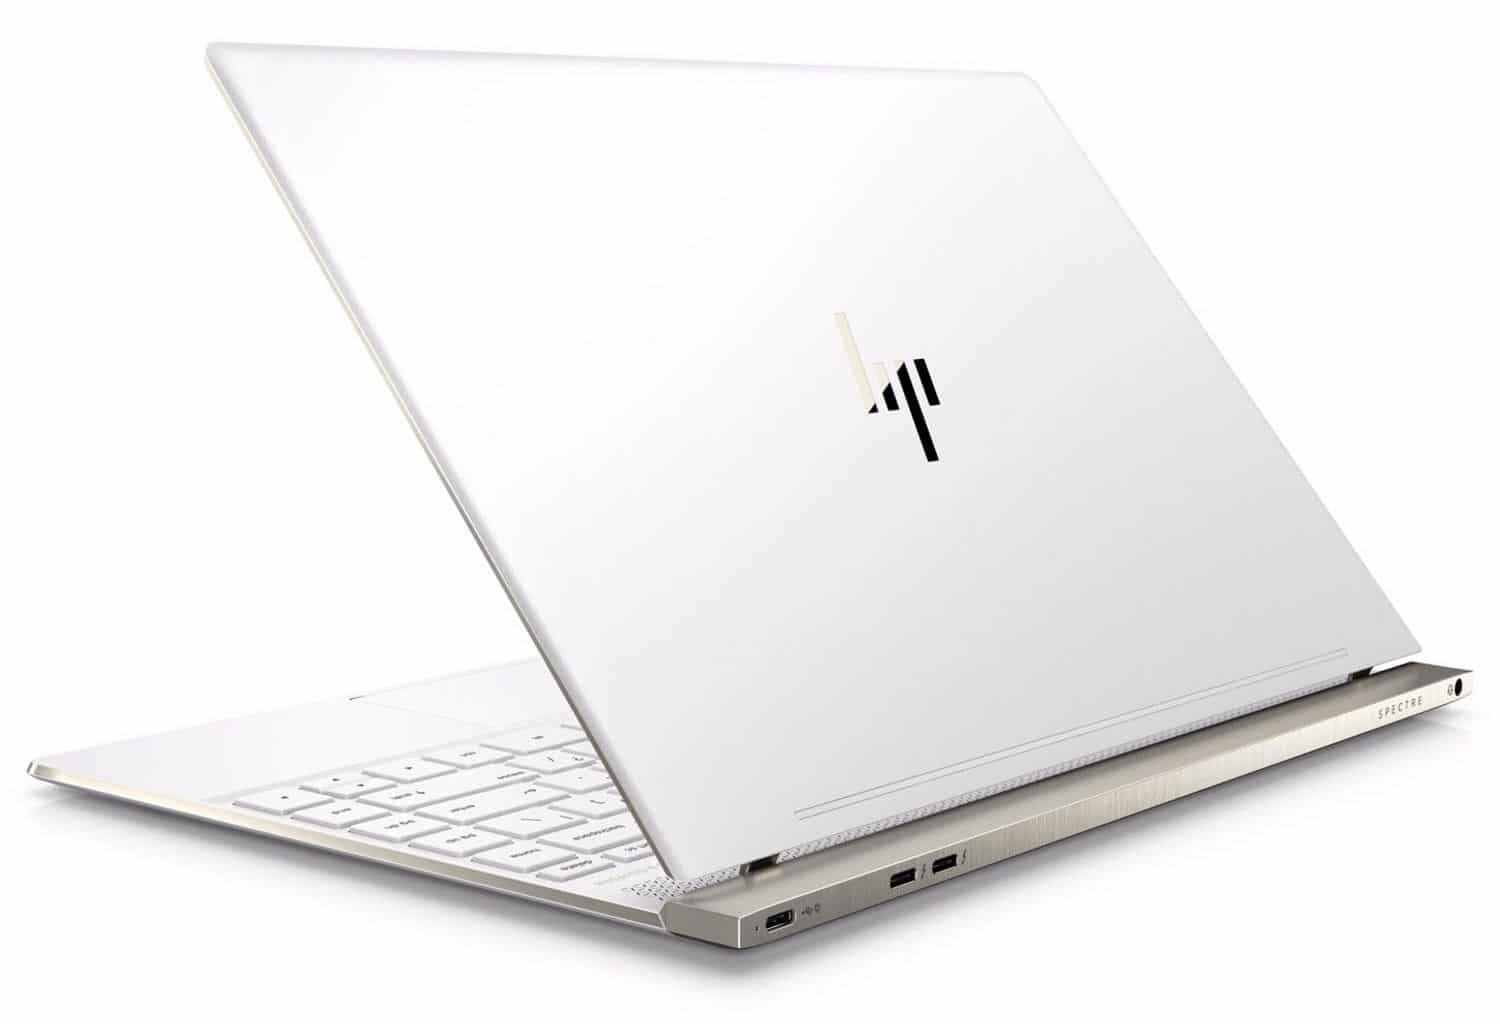 HP Spectre 13-af007nf, ultrabook 13 pouces fin Tactile SSD 1 To i7 (1299€)